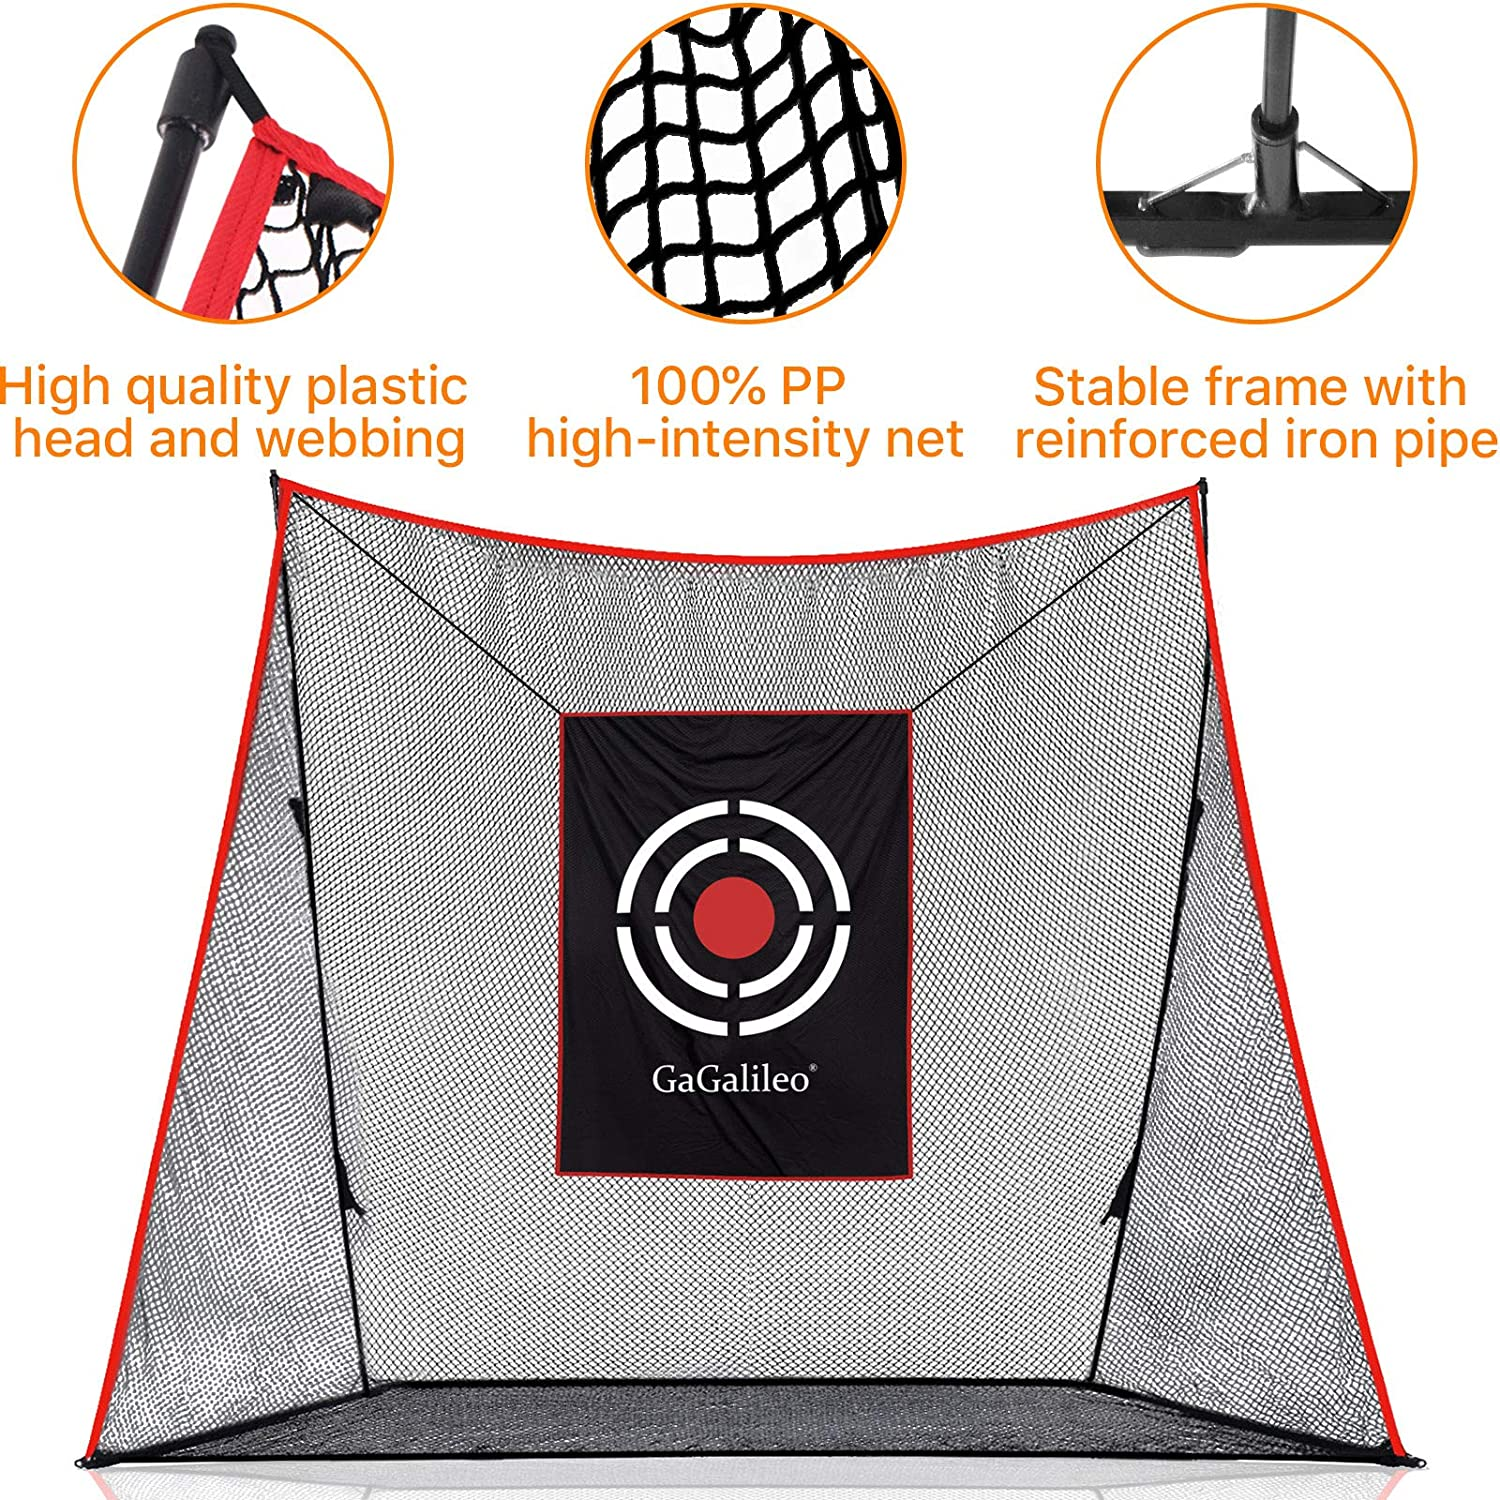 Galileo Golf Practice Hitting Net for Backyard Golf Net Driving Range with Golf Target and Carry Bag | 12'x10'x4'Size